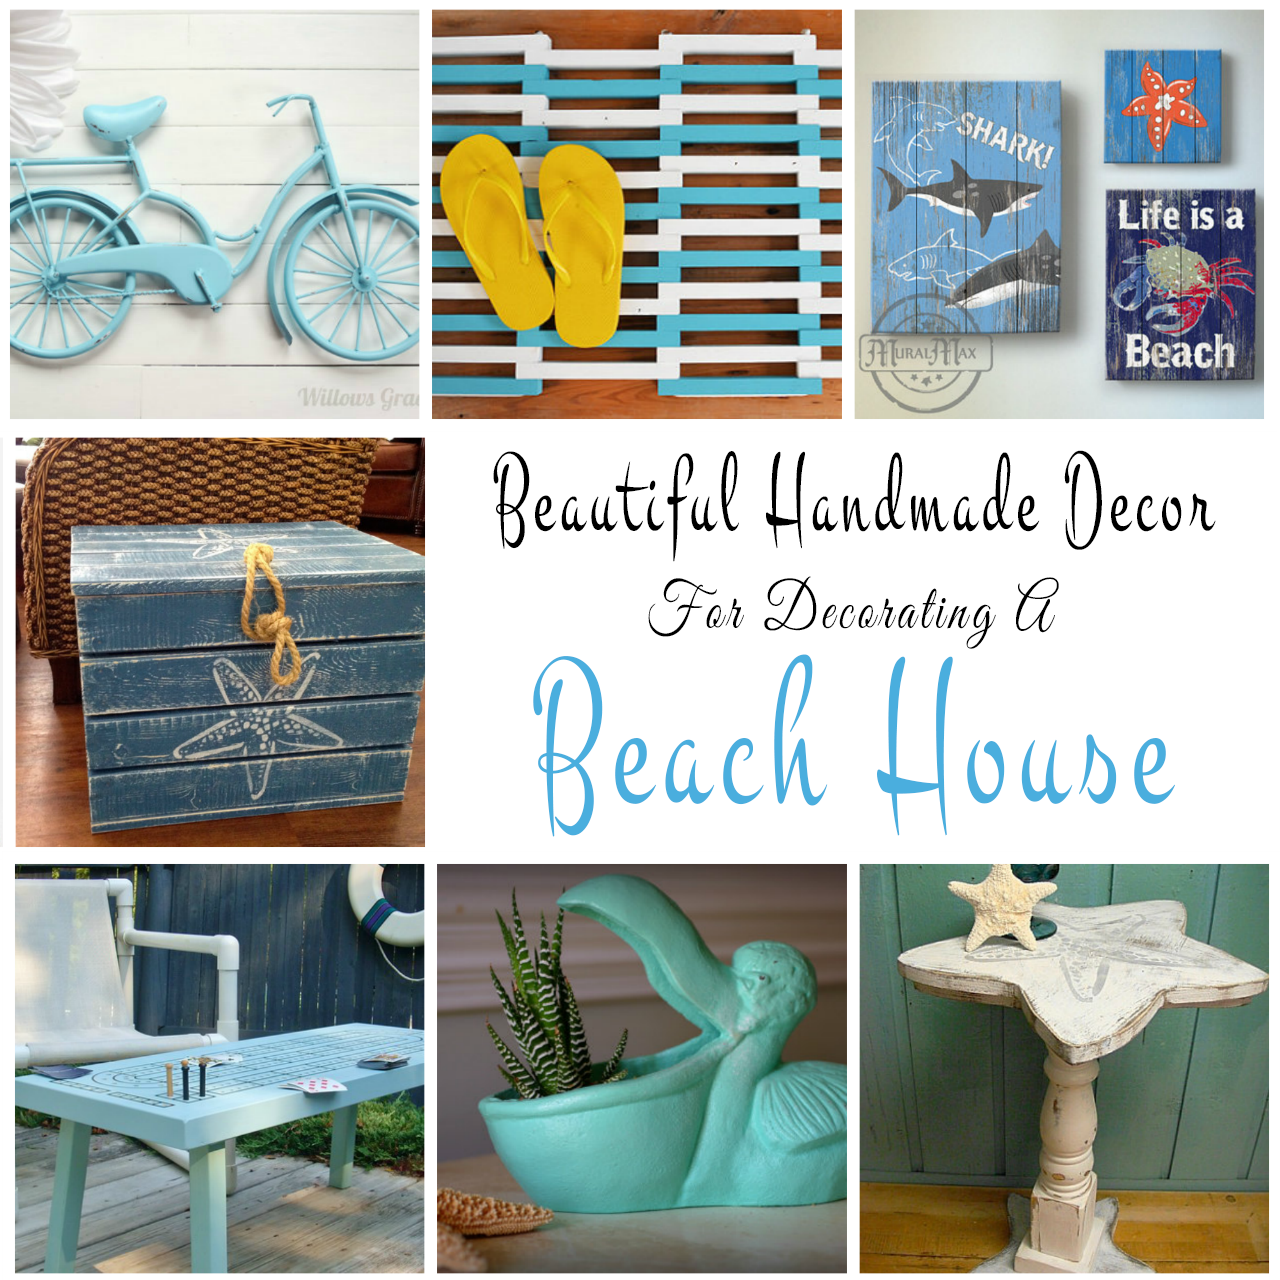 Handmade decor ideas for decorating a beach house for House decorating ideas